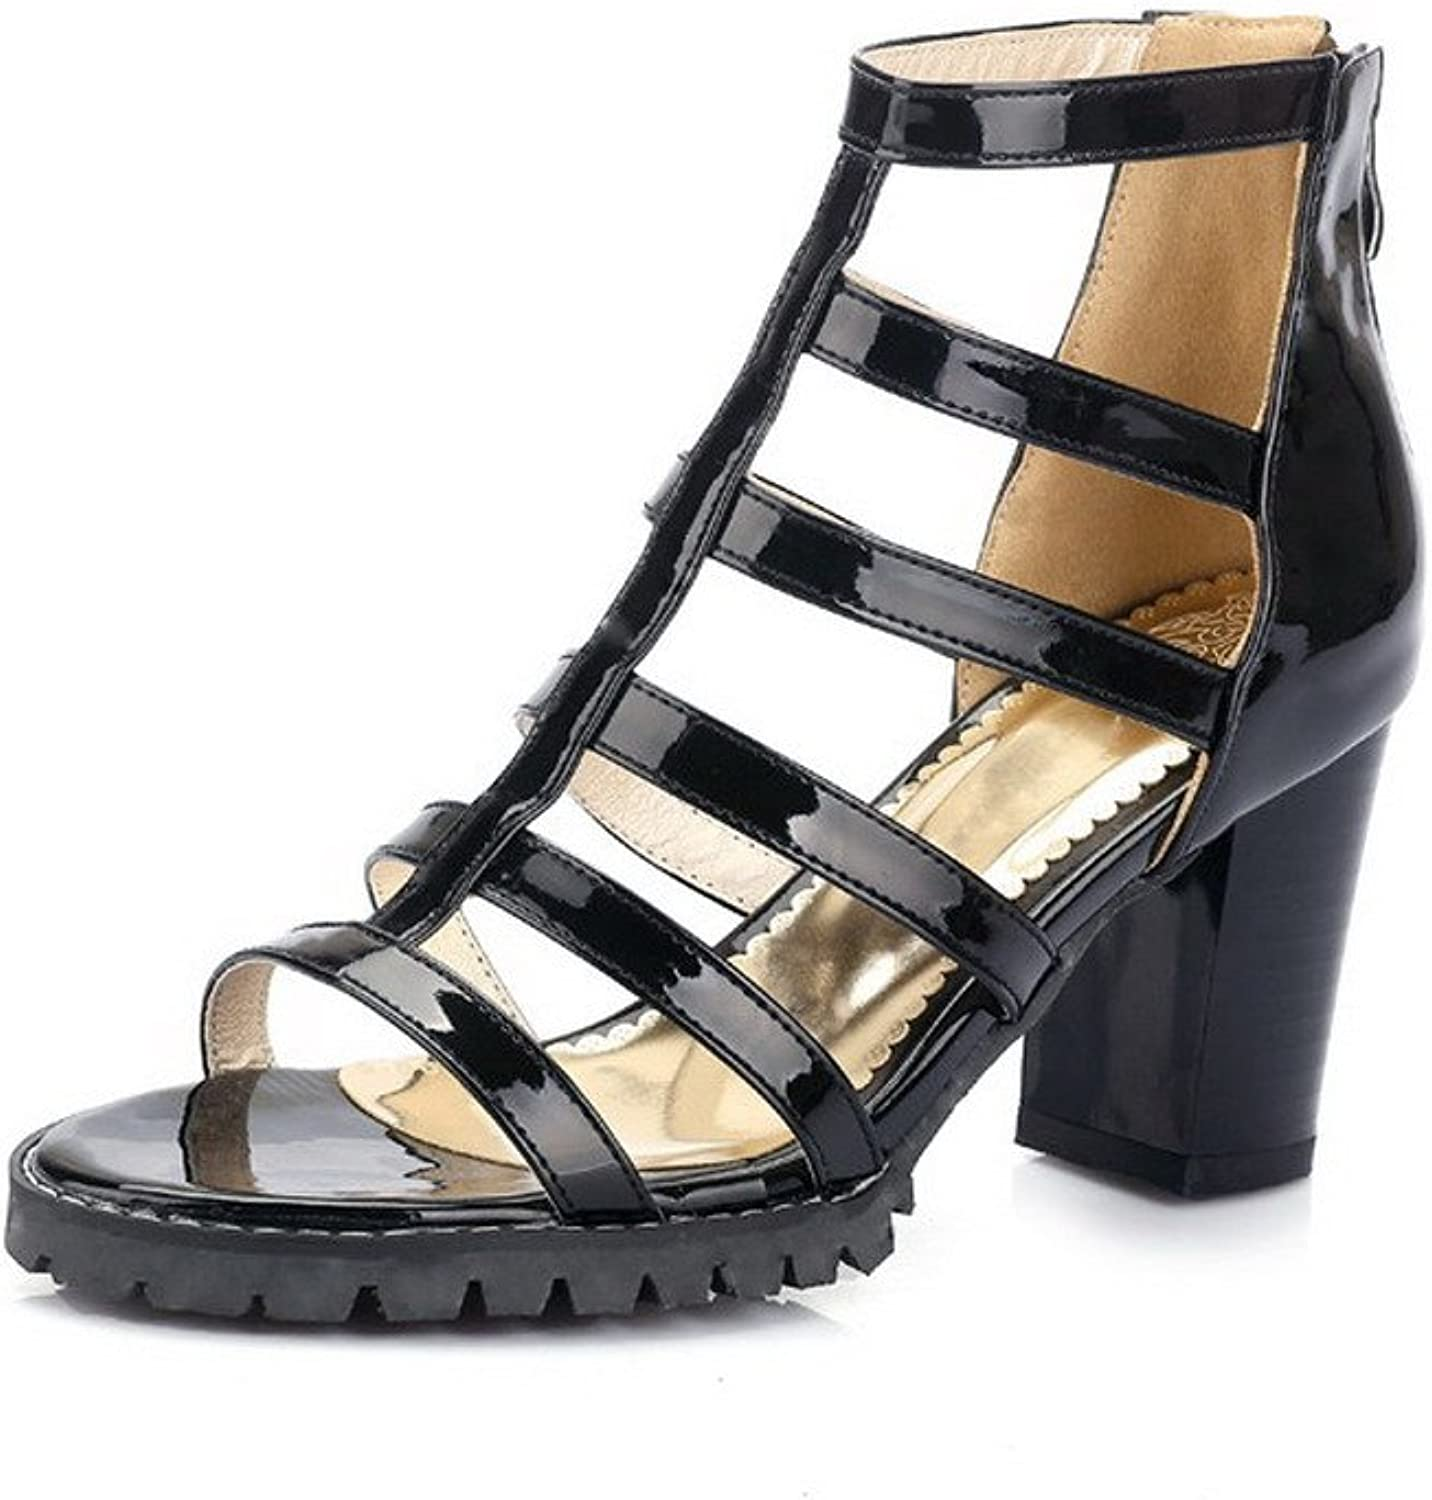 AmoonyFashion Women's Patent Leather Zipper Open Toe High-Heels Solid Heeled-Sandals